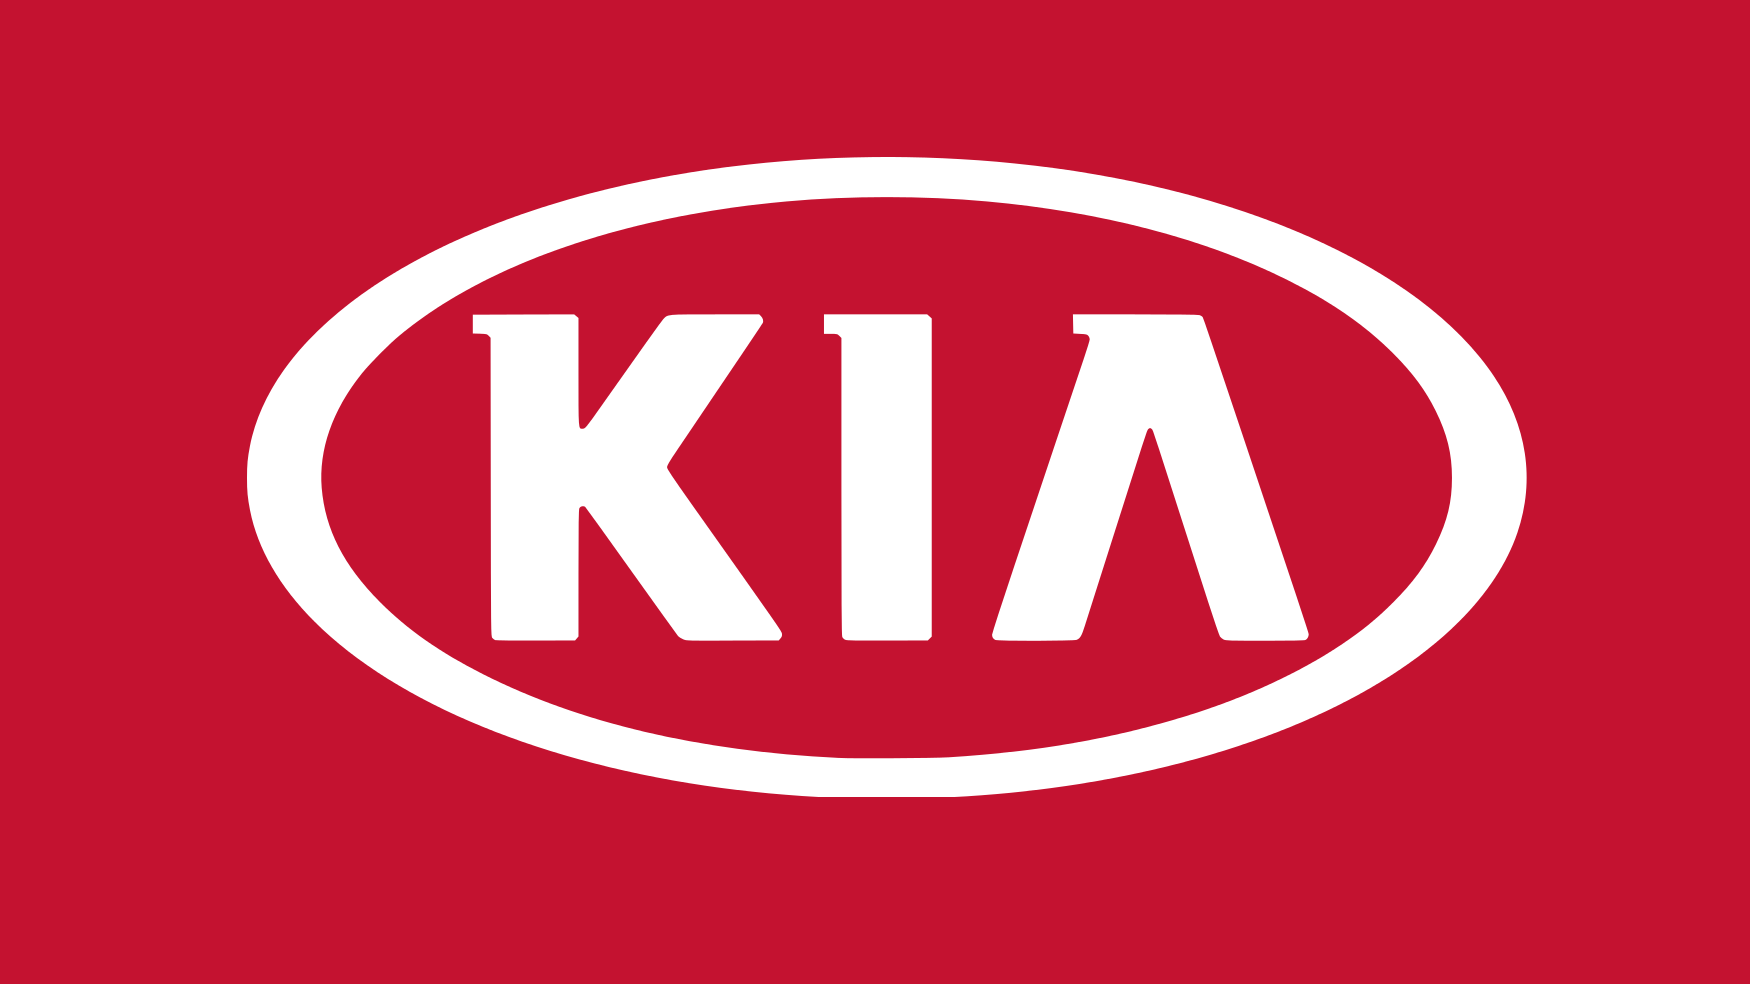 Light Effect Hd Wallpaper Kia Vector Logo Png Transparent Kia Vector Logo Png Images